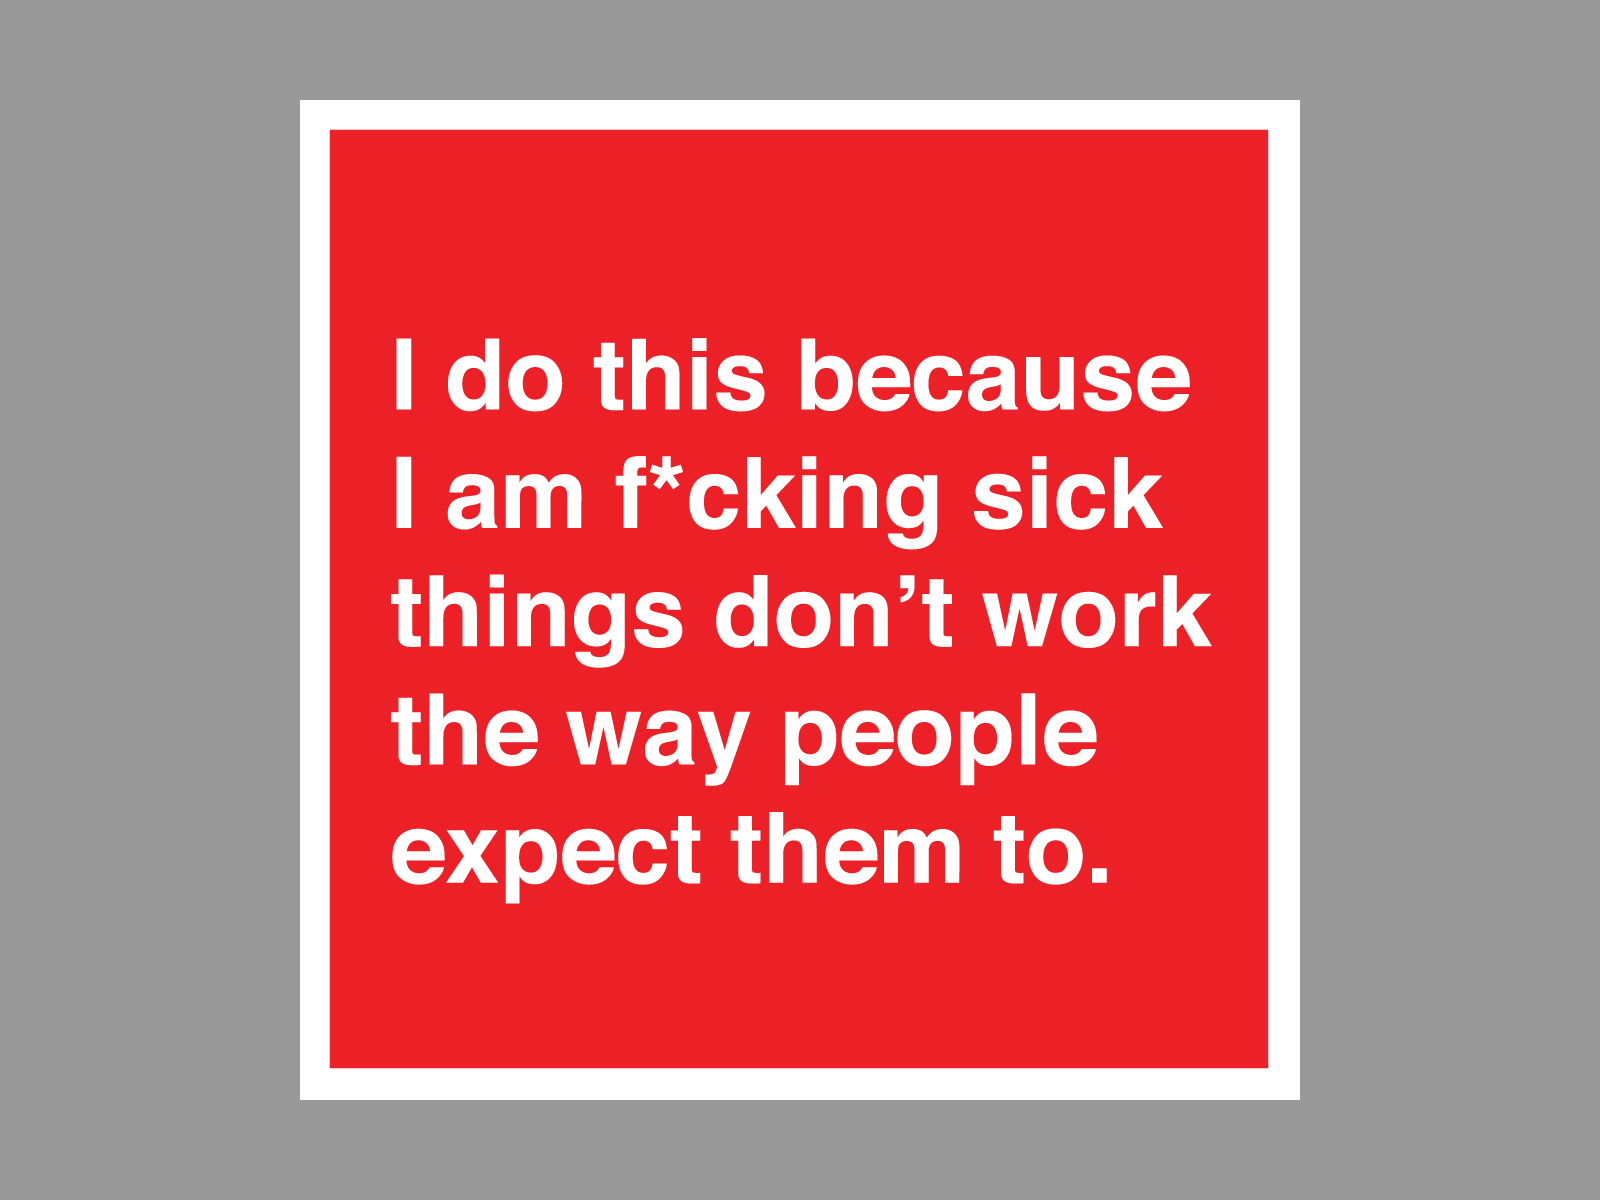 I do this because I am f*cking sick things do't work people expect them to sticker